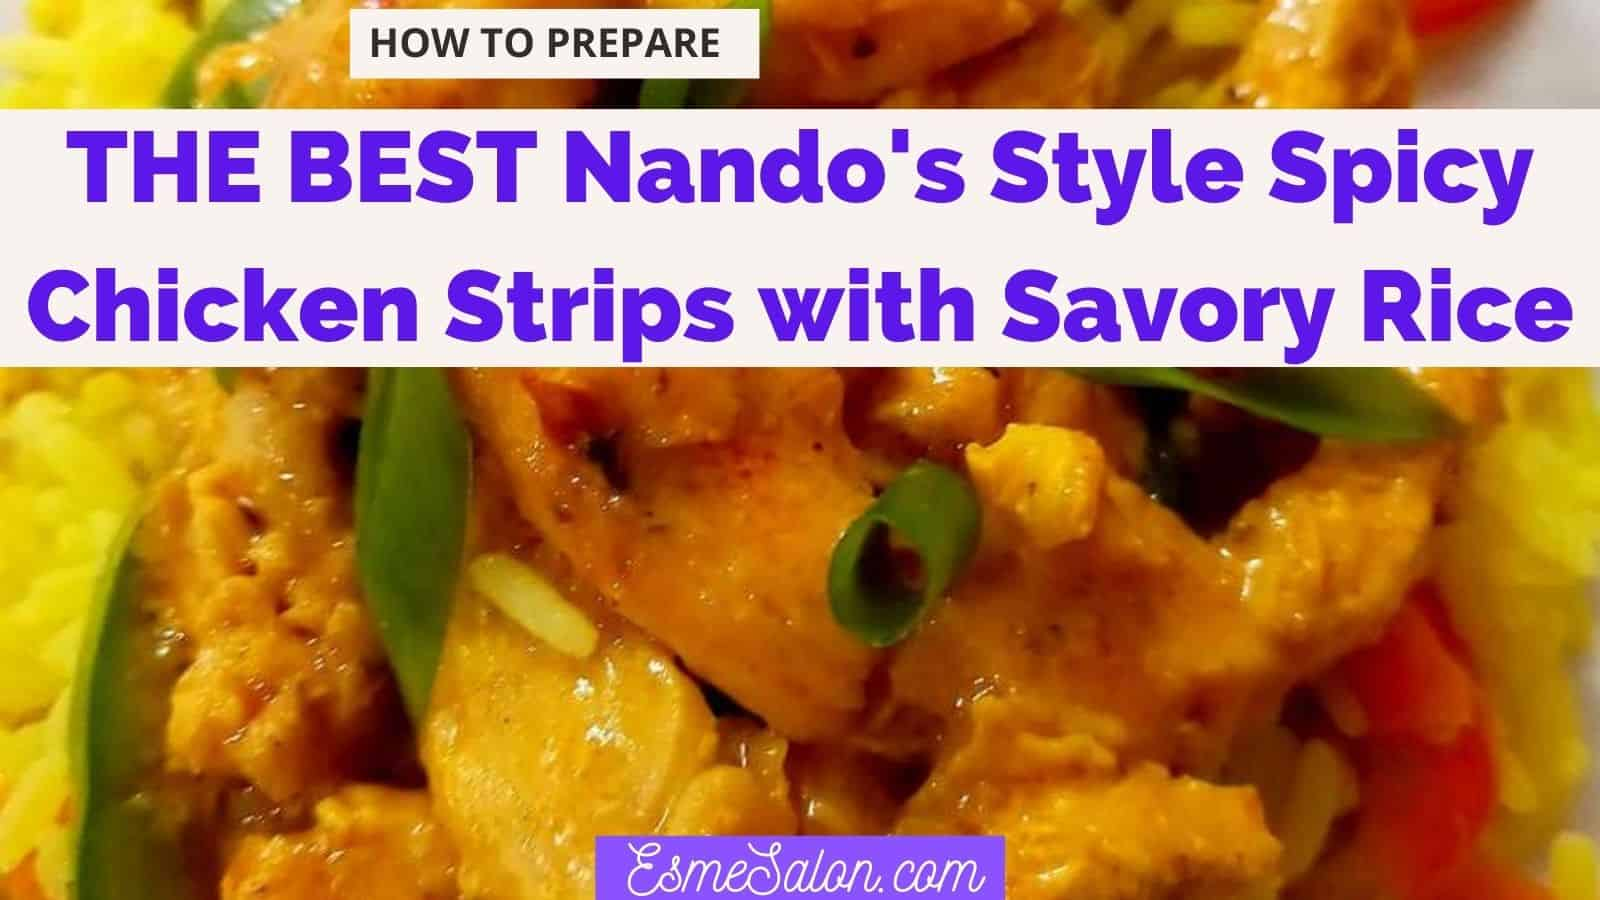 Nando's Style Spicy Chicken Strips with Savory Rice